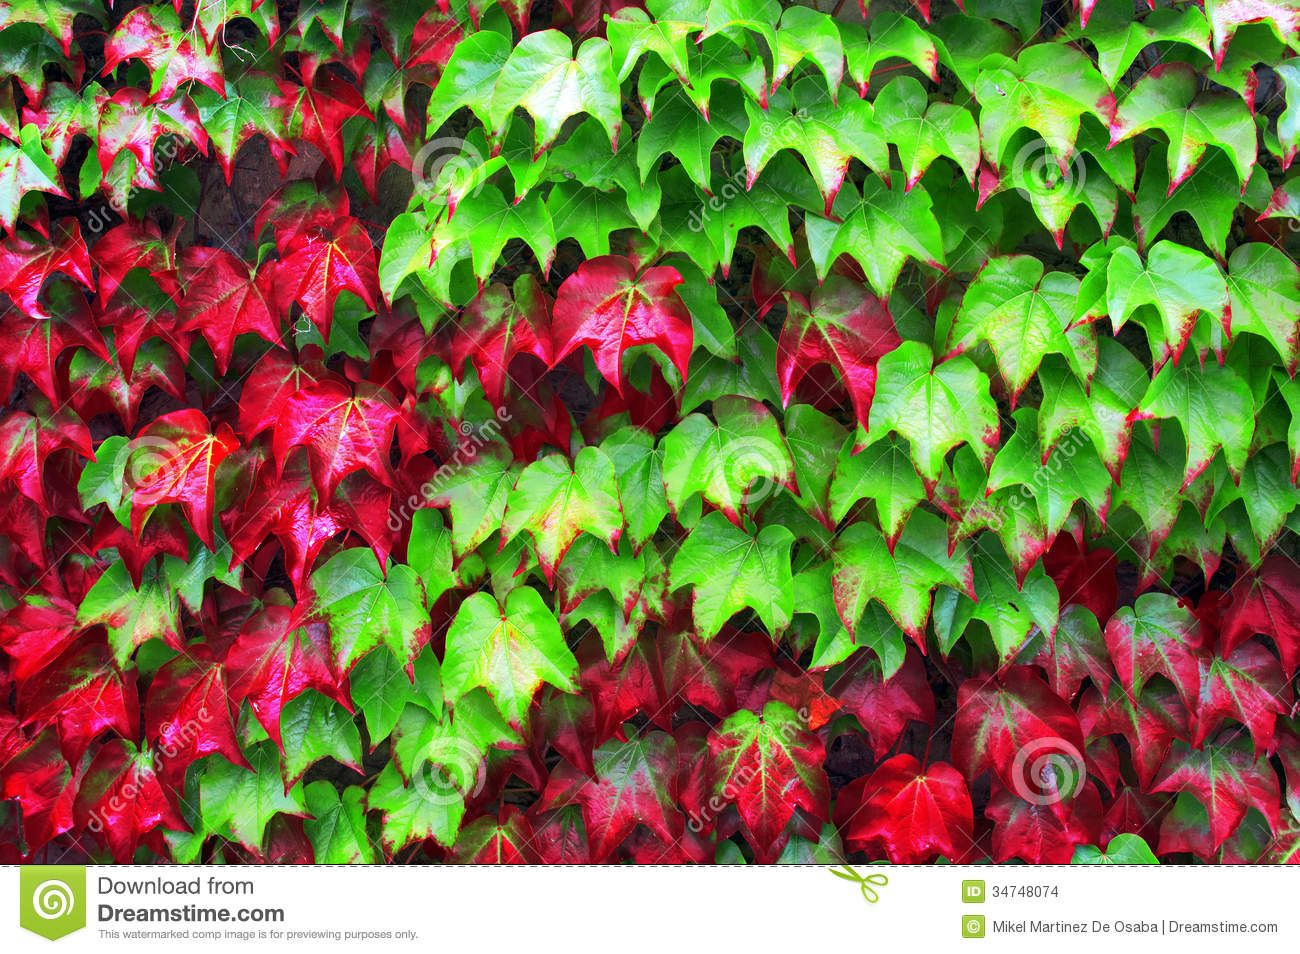 http://thumbs.dreamstime.com/z/ivy-plants-autumn-red-green-leaves-34748074.jpg